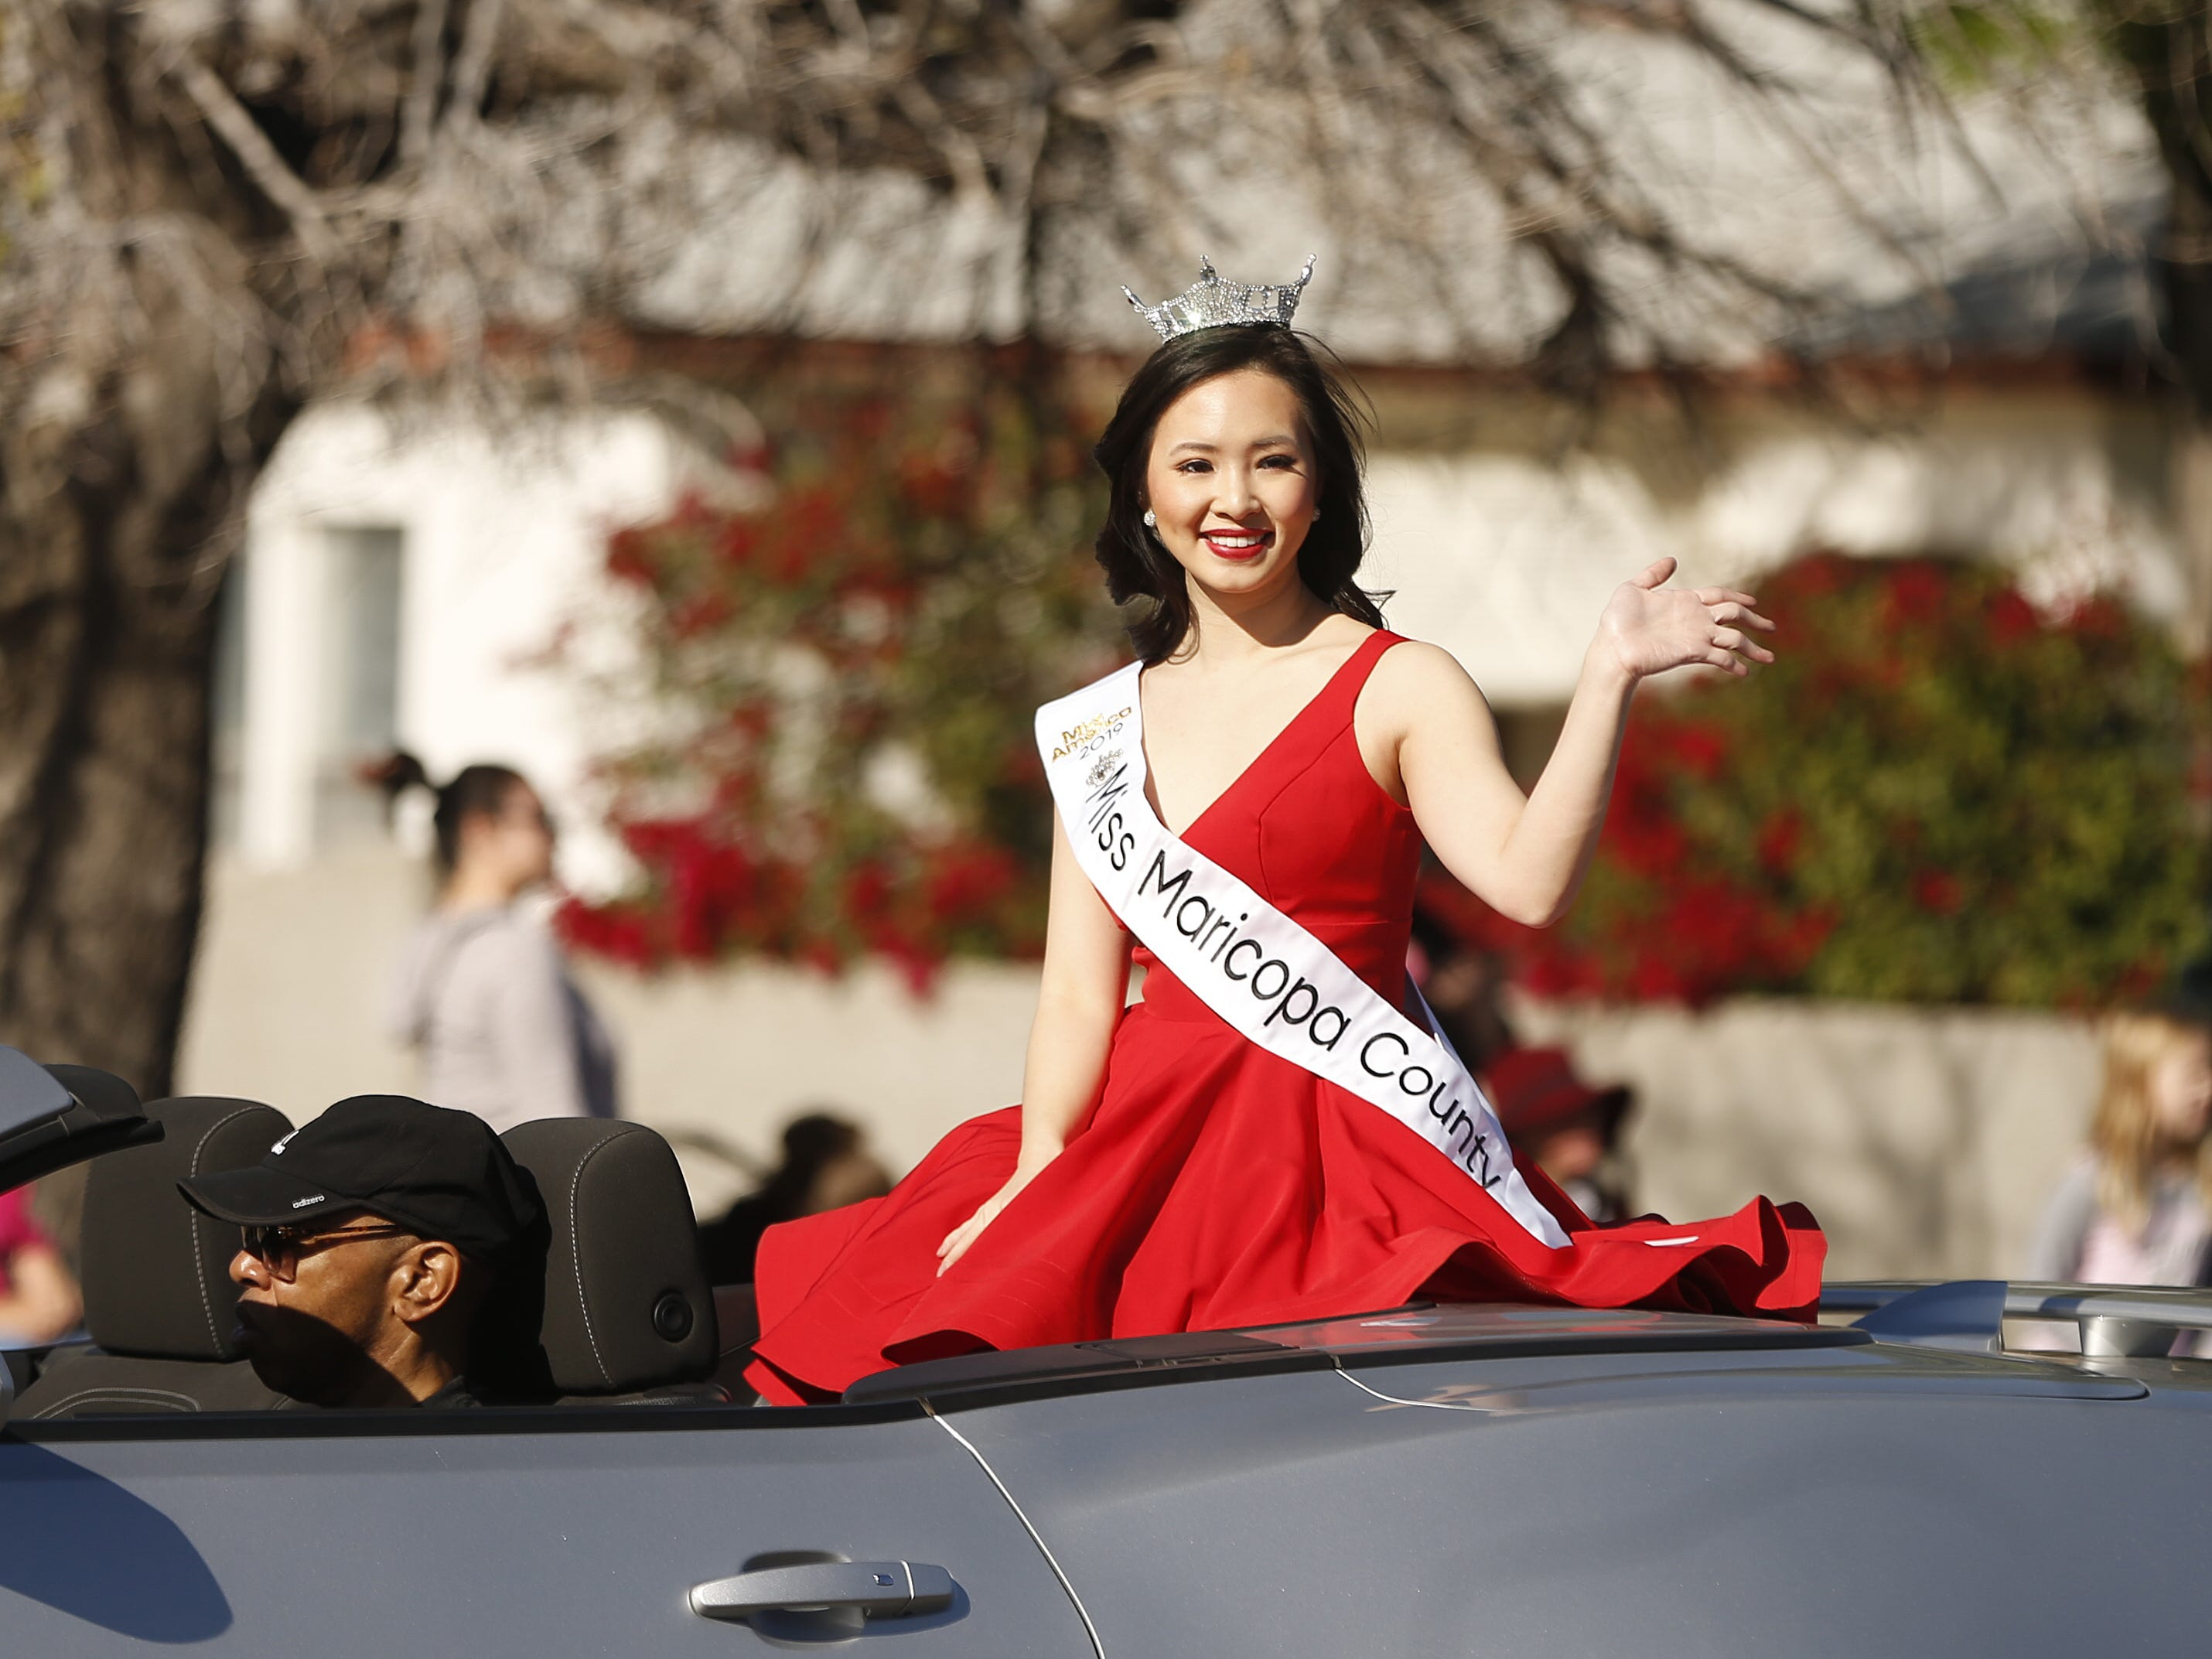 Miss Maricopa County's Laetitia Hua waves at people on the street during the MLK Day Parade in Mesa, Ariz. on January 21, 2019.